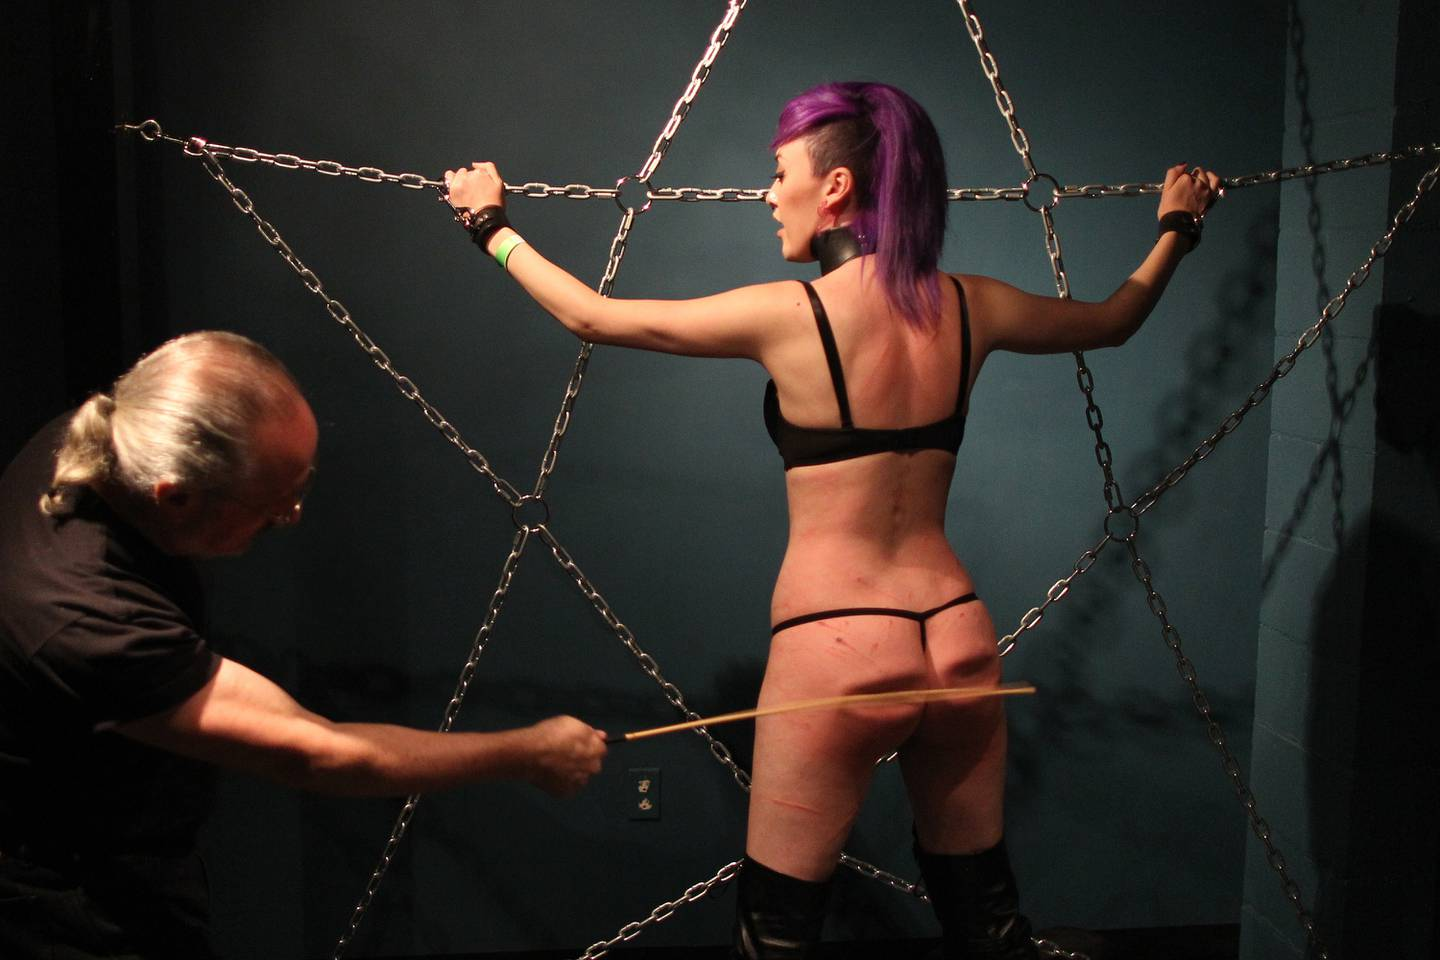 Redlines ties up and suspends voluntary submissive Mermaid at a dungeon party during the DomCon LA domination convention on May 21, 2016 in Los Angeles, California.